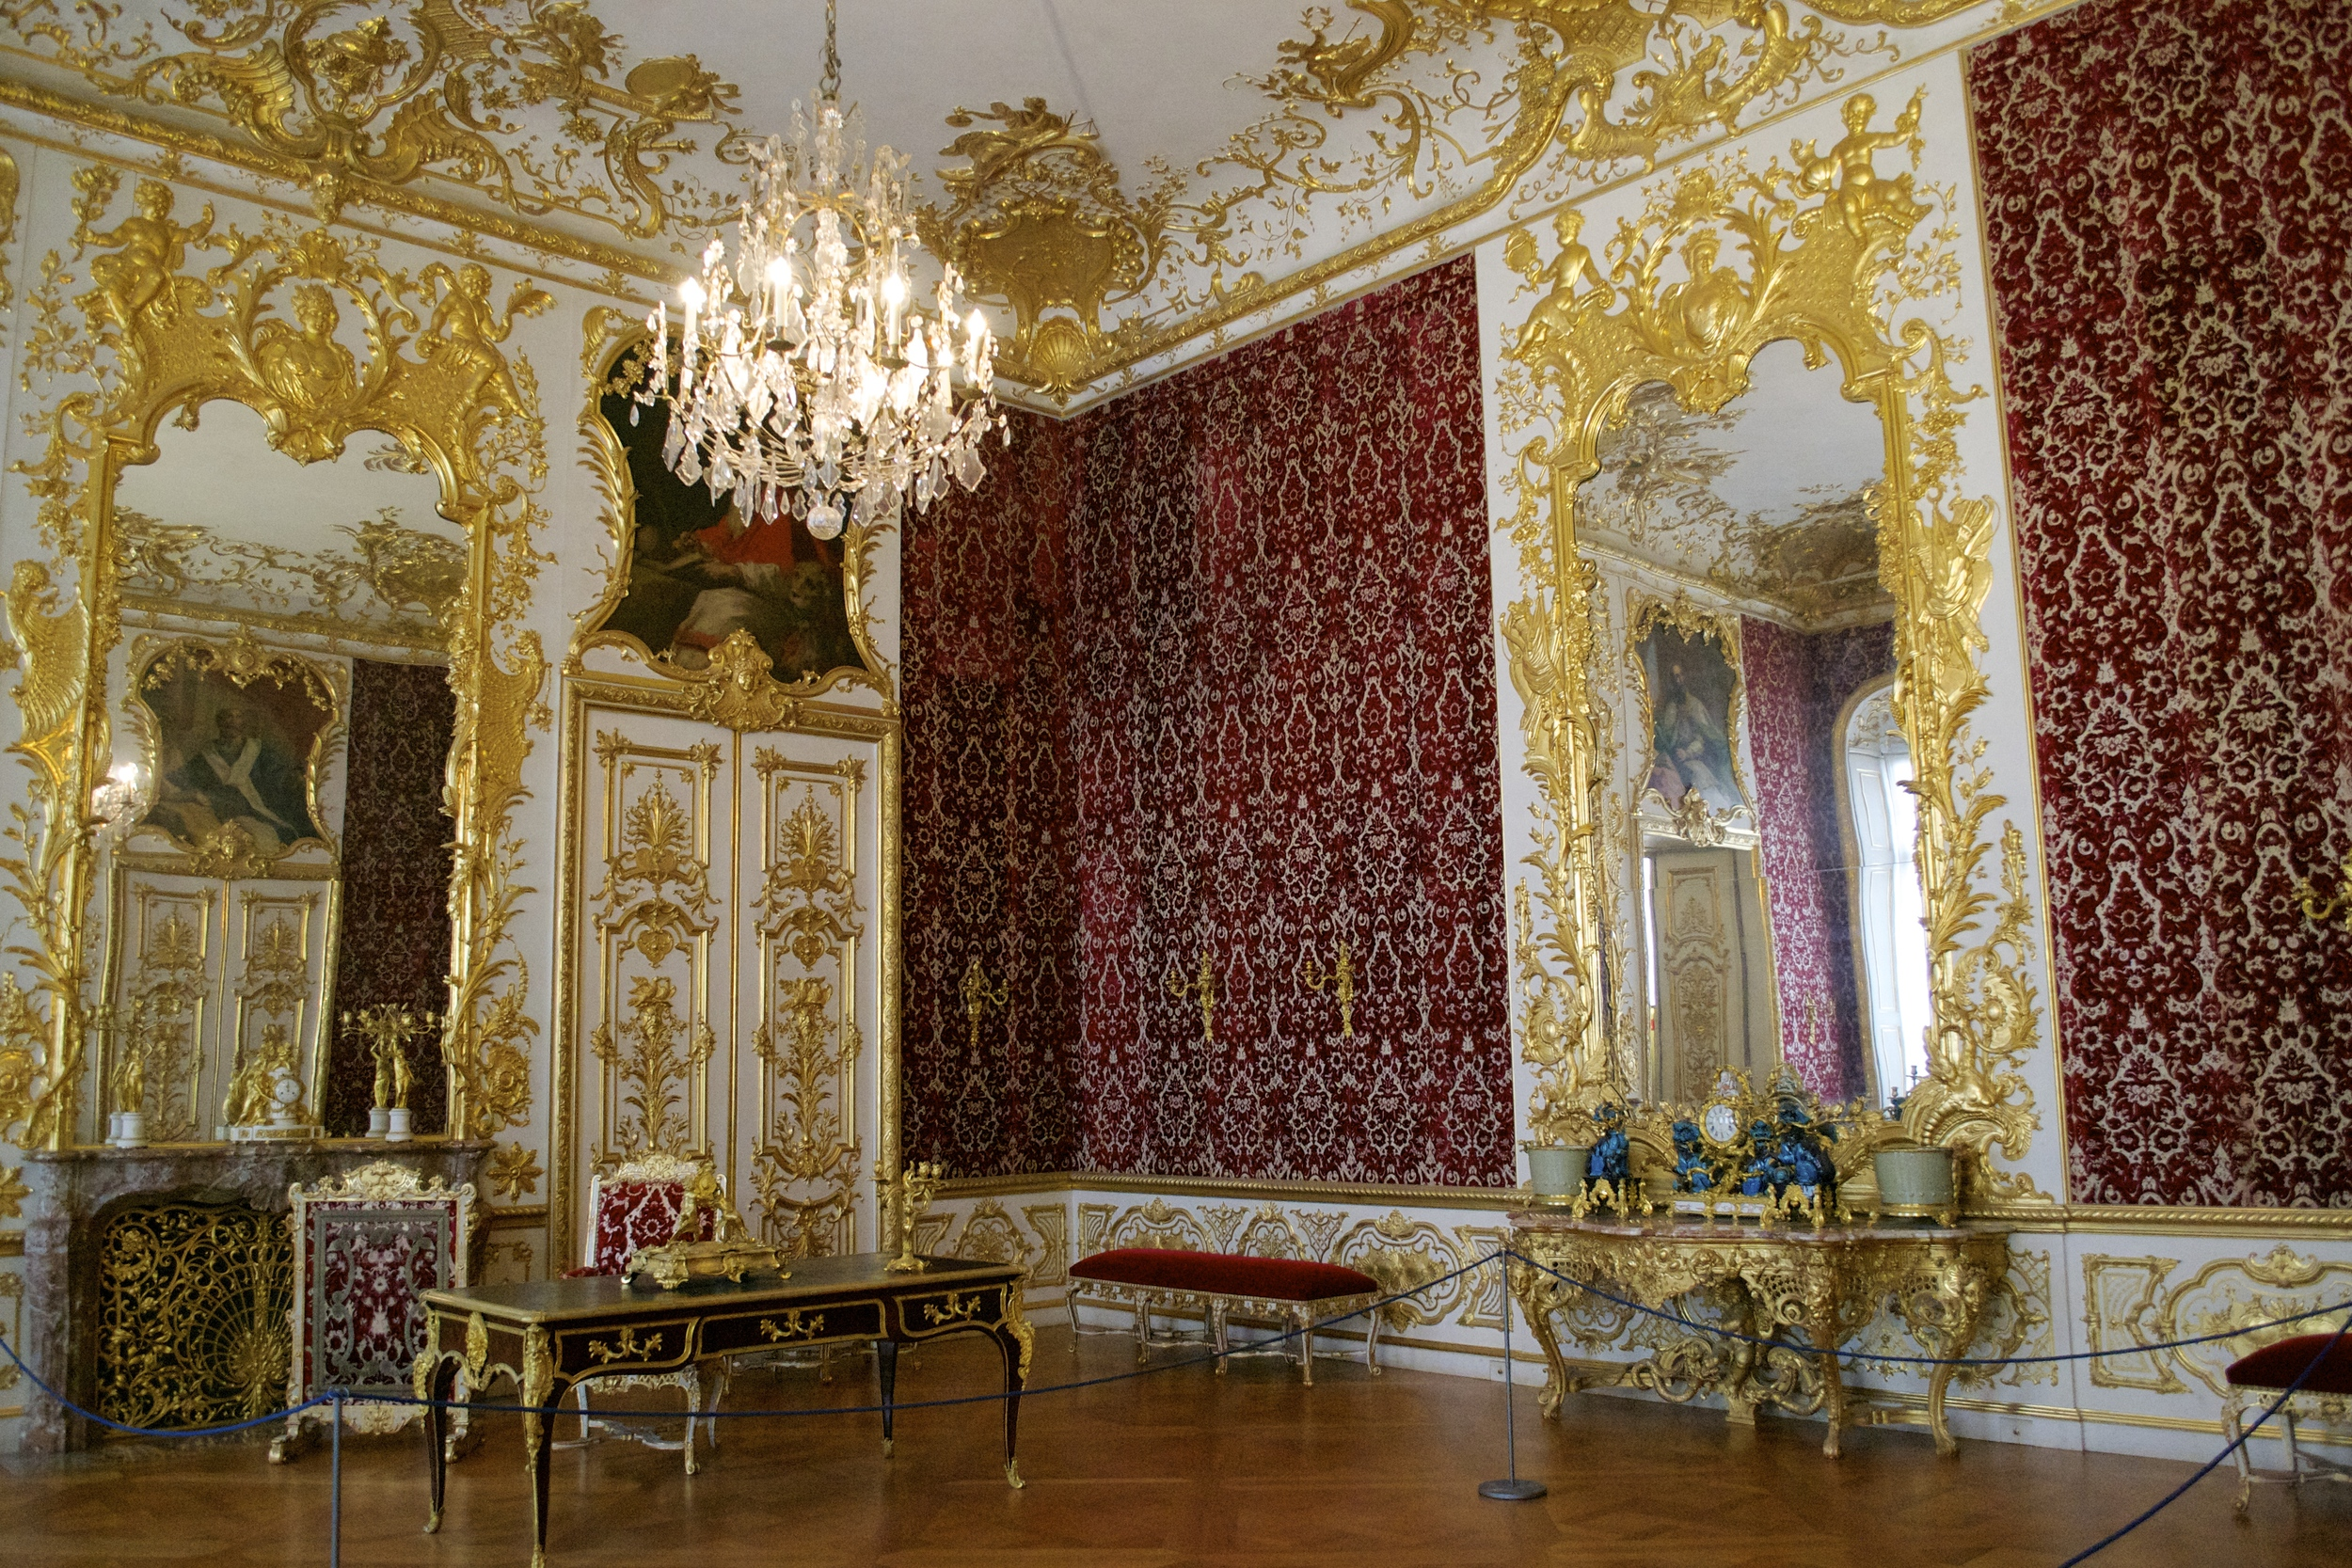 A typical room in the palace.